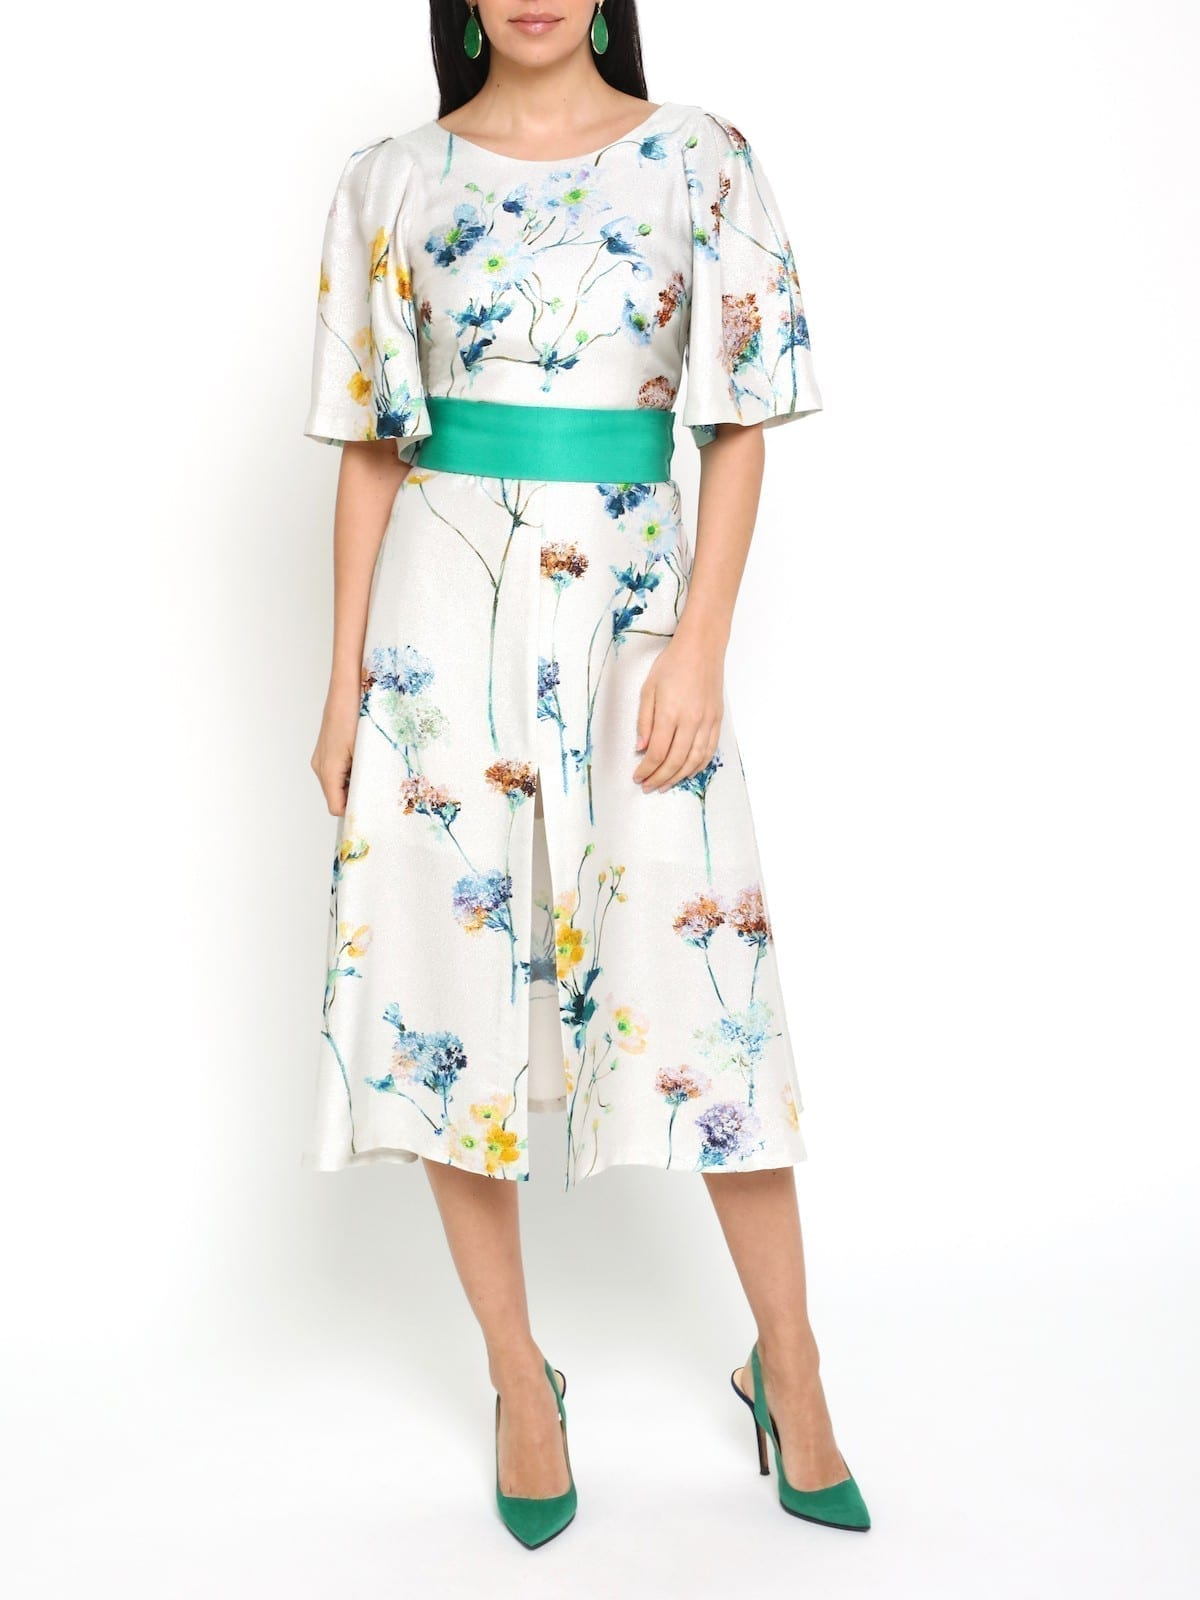 SAFIRO Crystal Flower Dress